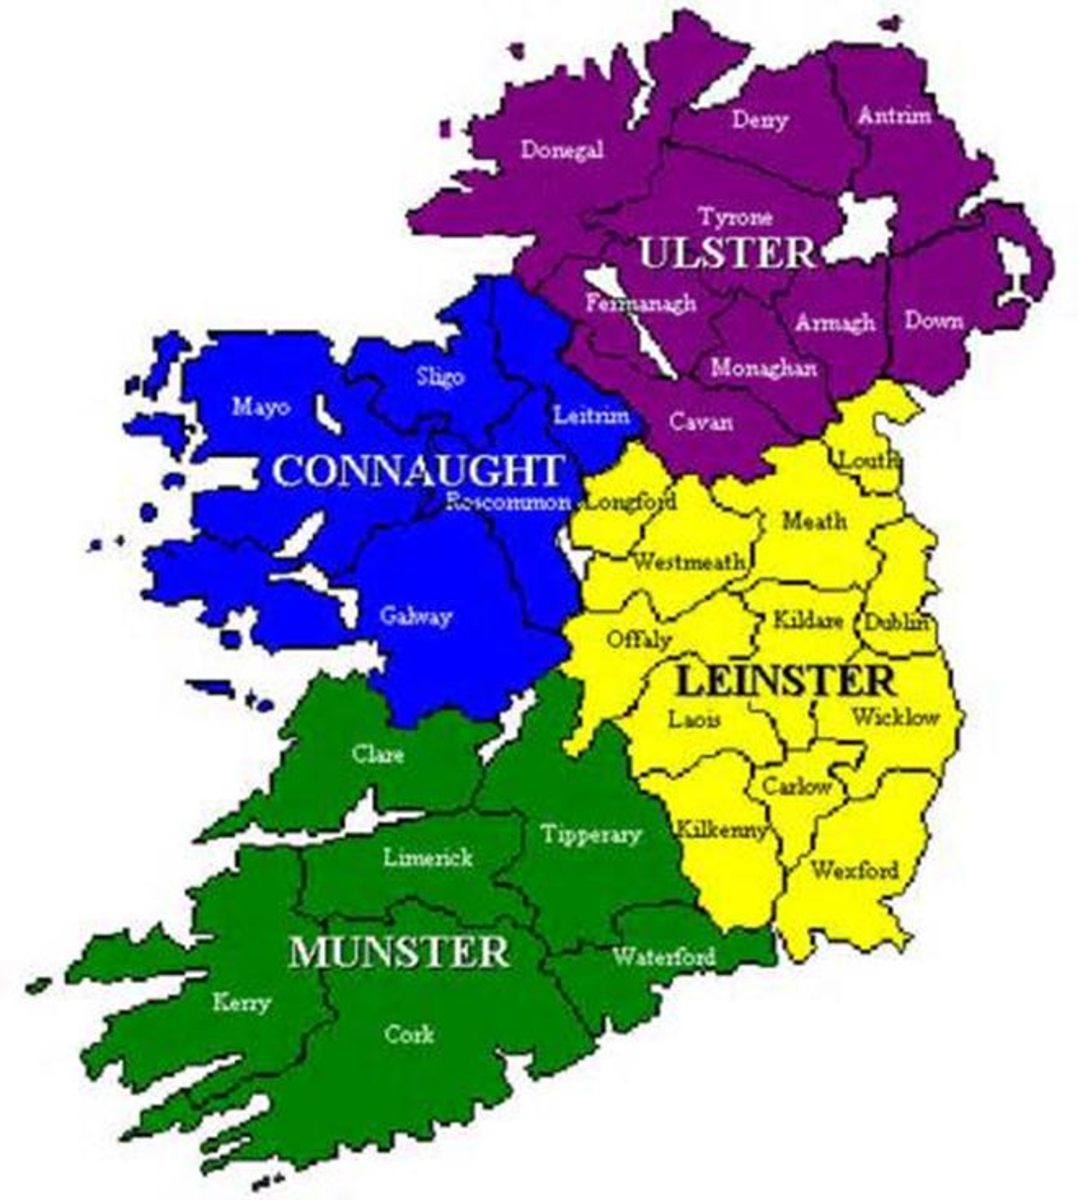 Kingdoms and alliances in mediaeval Ireland